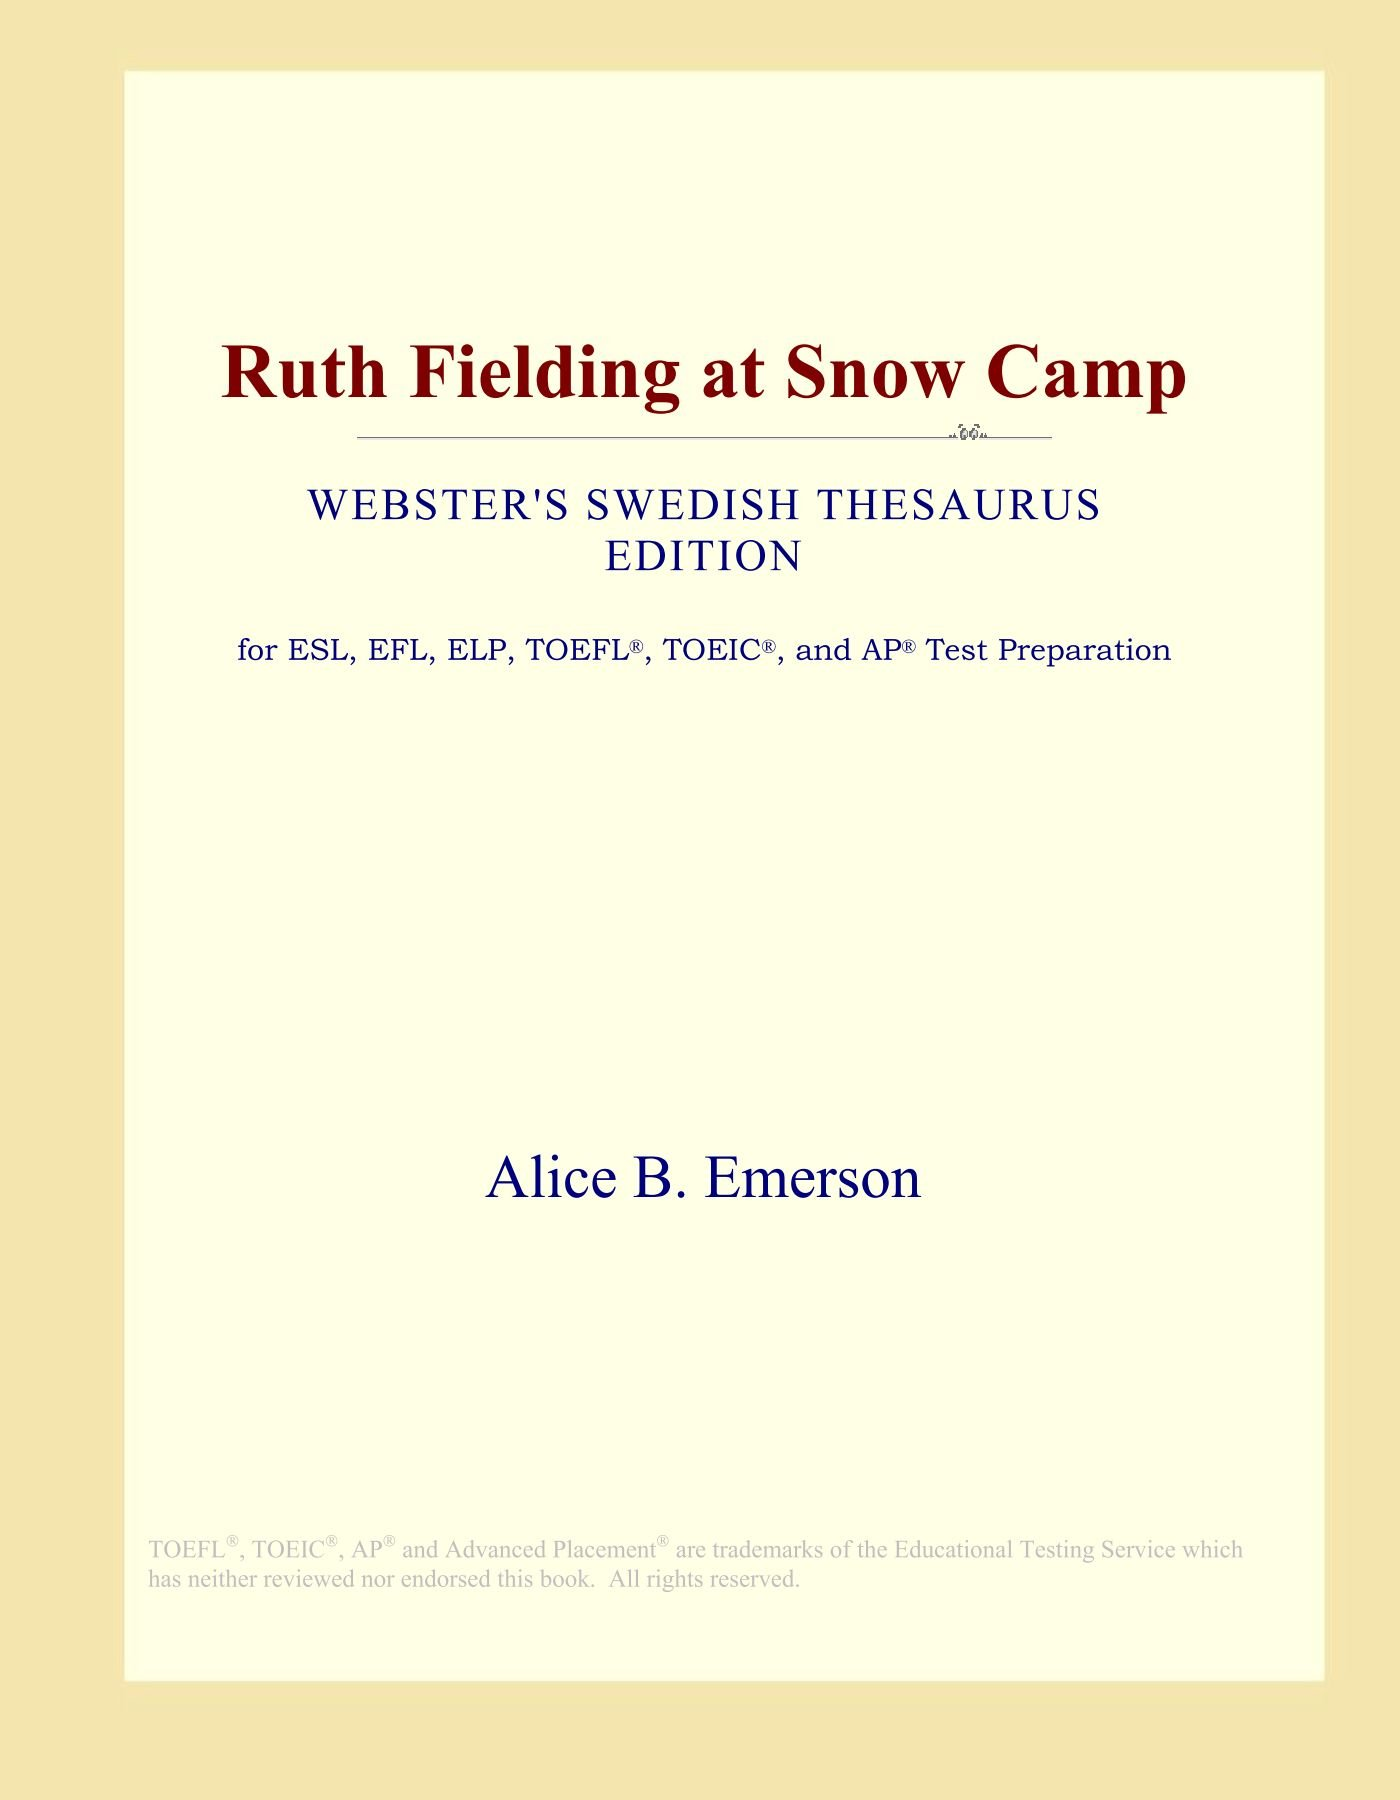 Ruth Fielding at Snow Camp (Webster's Swedish Thesaurus Edition) PDF